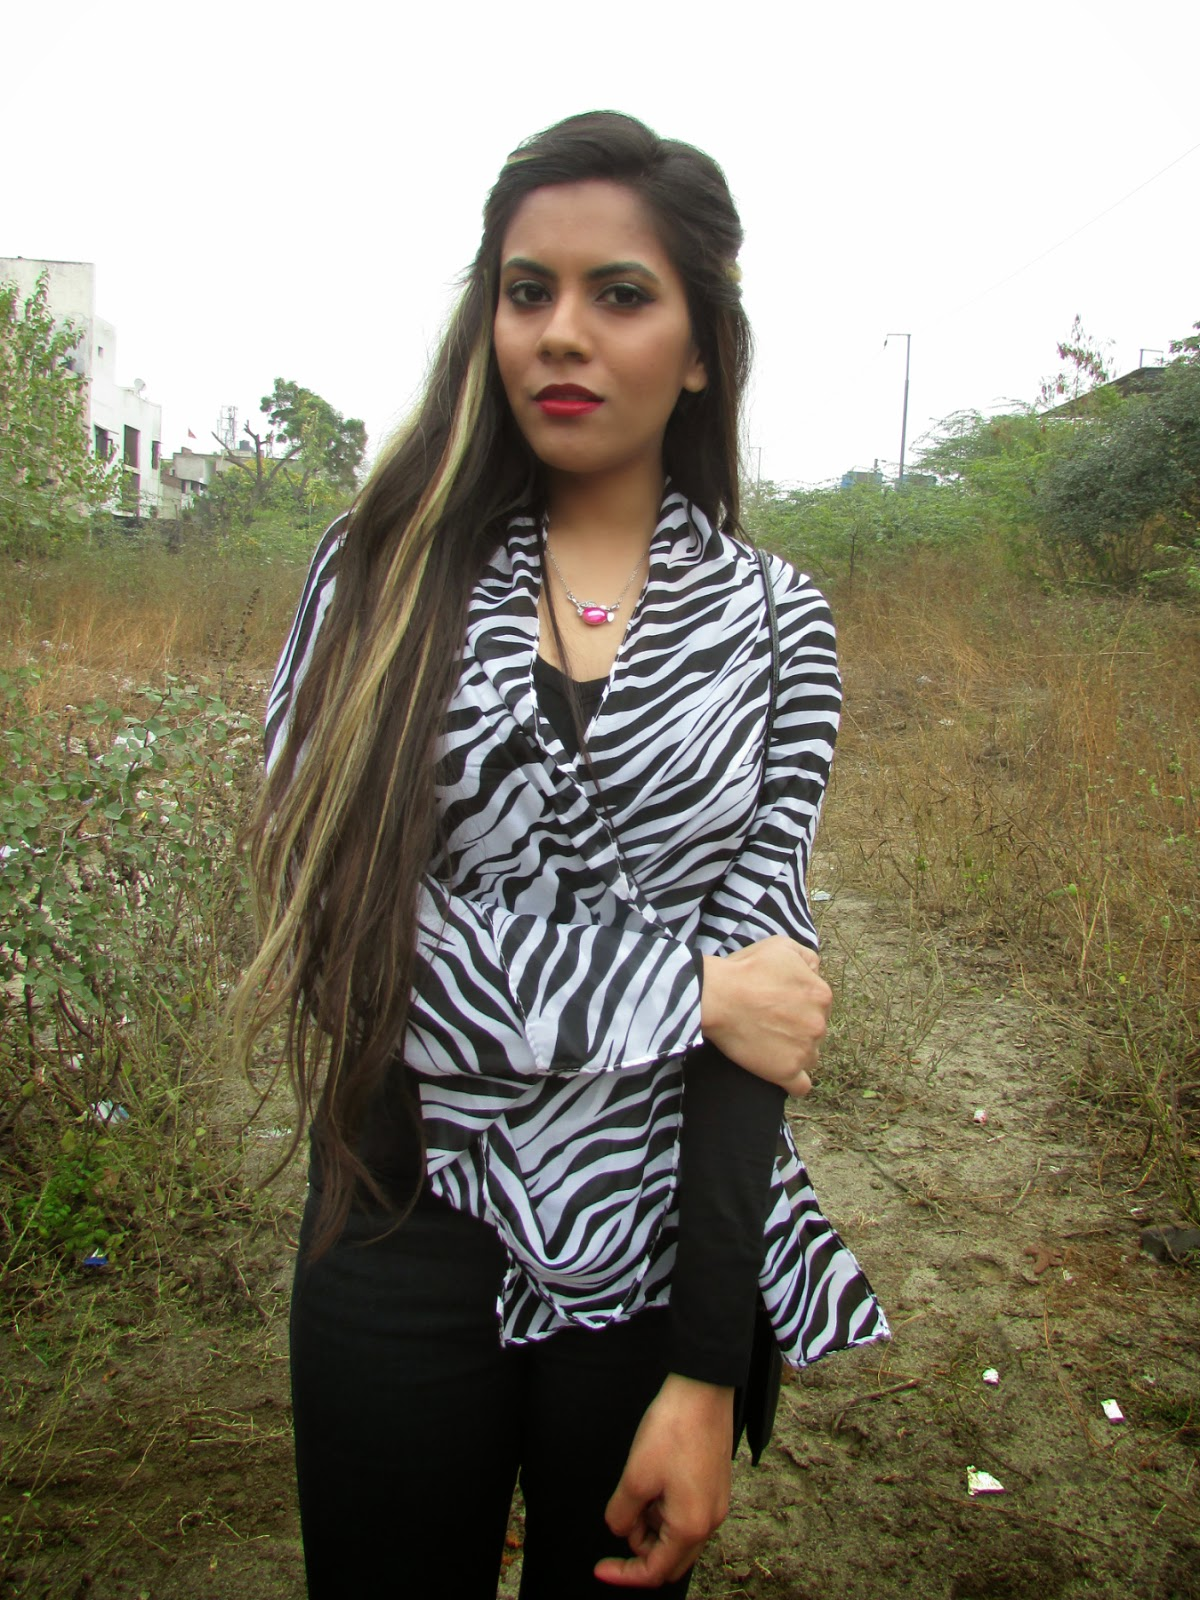 scarf, cheap scarf, zebra printed scarf, cheap scarves online, how to wear scarf, how to wear scarf as cape, latest trend 2015, echopaul, fashion, black white scarf, echopaul review, different ways to wear scarf, how to style scarf, soft scarf, animal print, animal print scarf, monochromatic scarf, monochromatic print, beauty , fashion,beauty and fashion,beauty blog, fashion blog , indian beauty blog,indian fashion blog, beauty and fashion blog, indian beauty and fashion blog, indian bloggers, indian beauty bloggers, indian fashion bloggers,indian bloggers online, top 10 indian bloggers, top indian bloggers,top 10 fashion bloggers, indian bloggers on blogspot,home remedies, how to